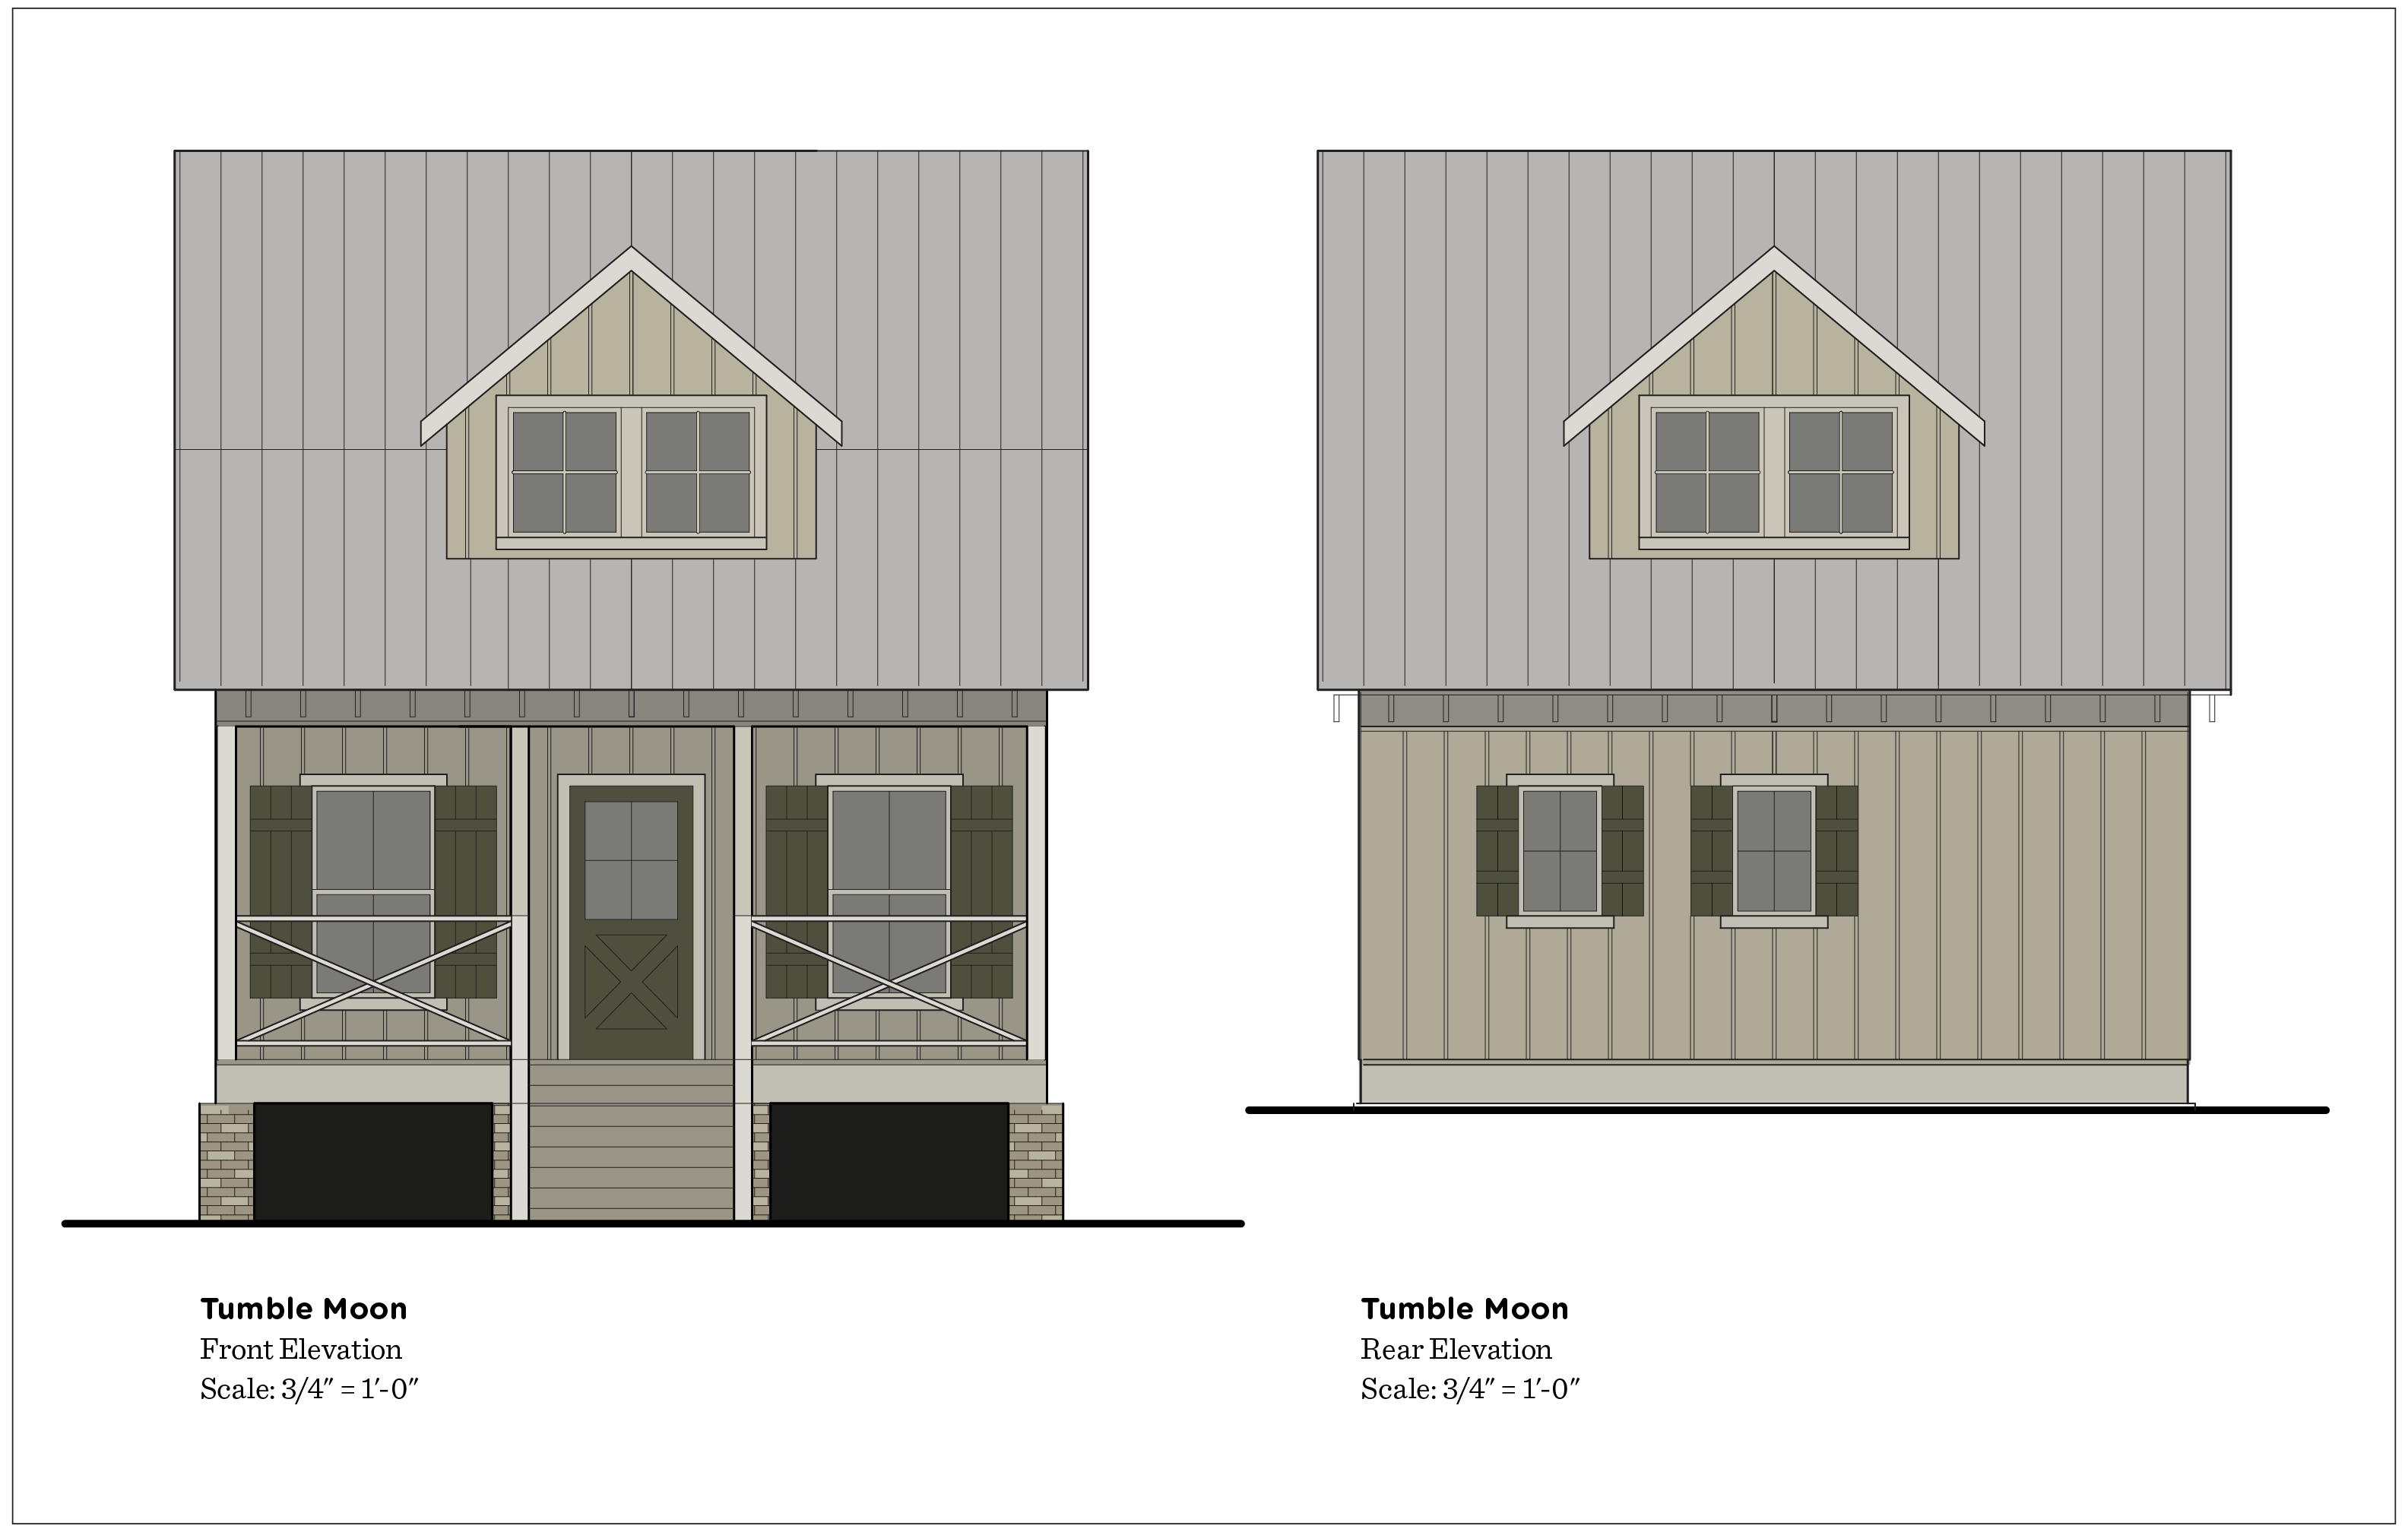 Paint colors have not been picked for the house, but I felt these drawings could use some pizzazz. The back elevation has changed. The back door has been moved around to the side, and there are now two windows.